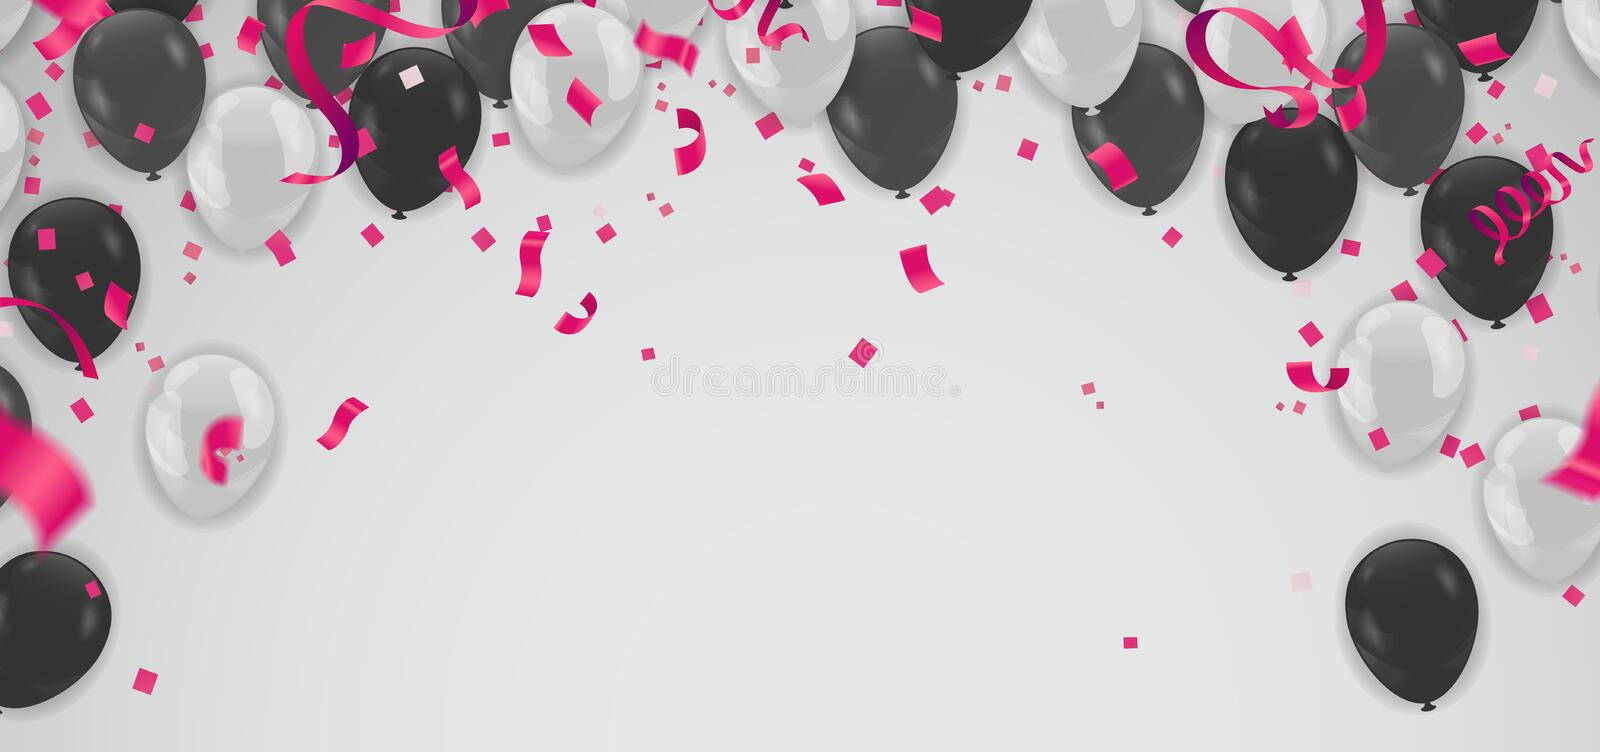 Black and white transparent helium balloons on white background. royalty free illustration